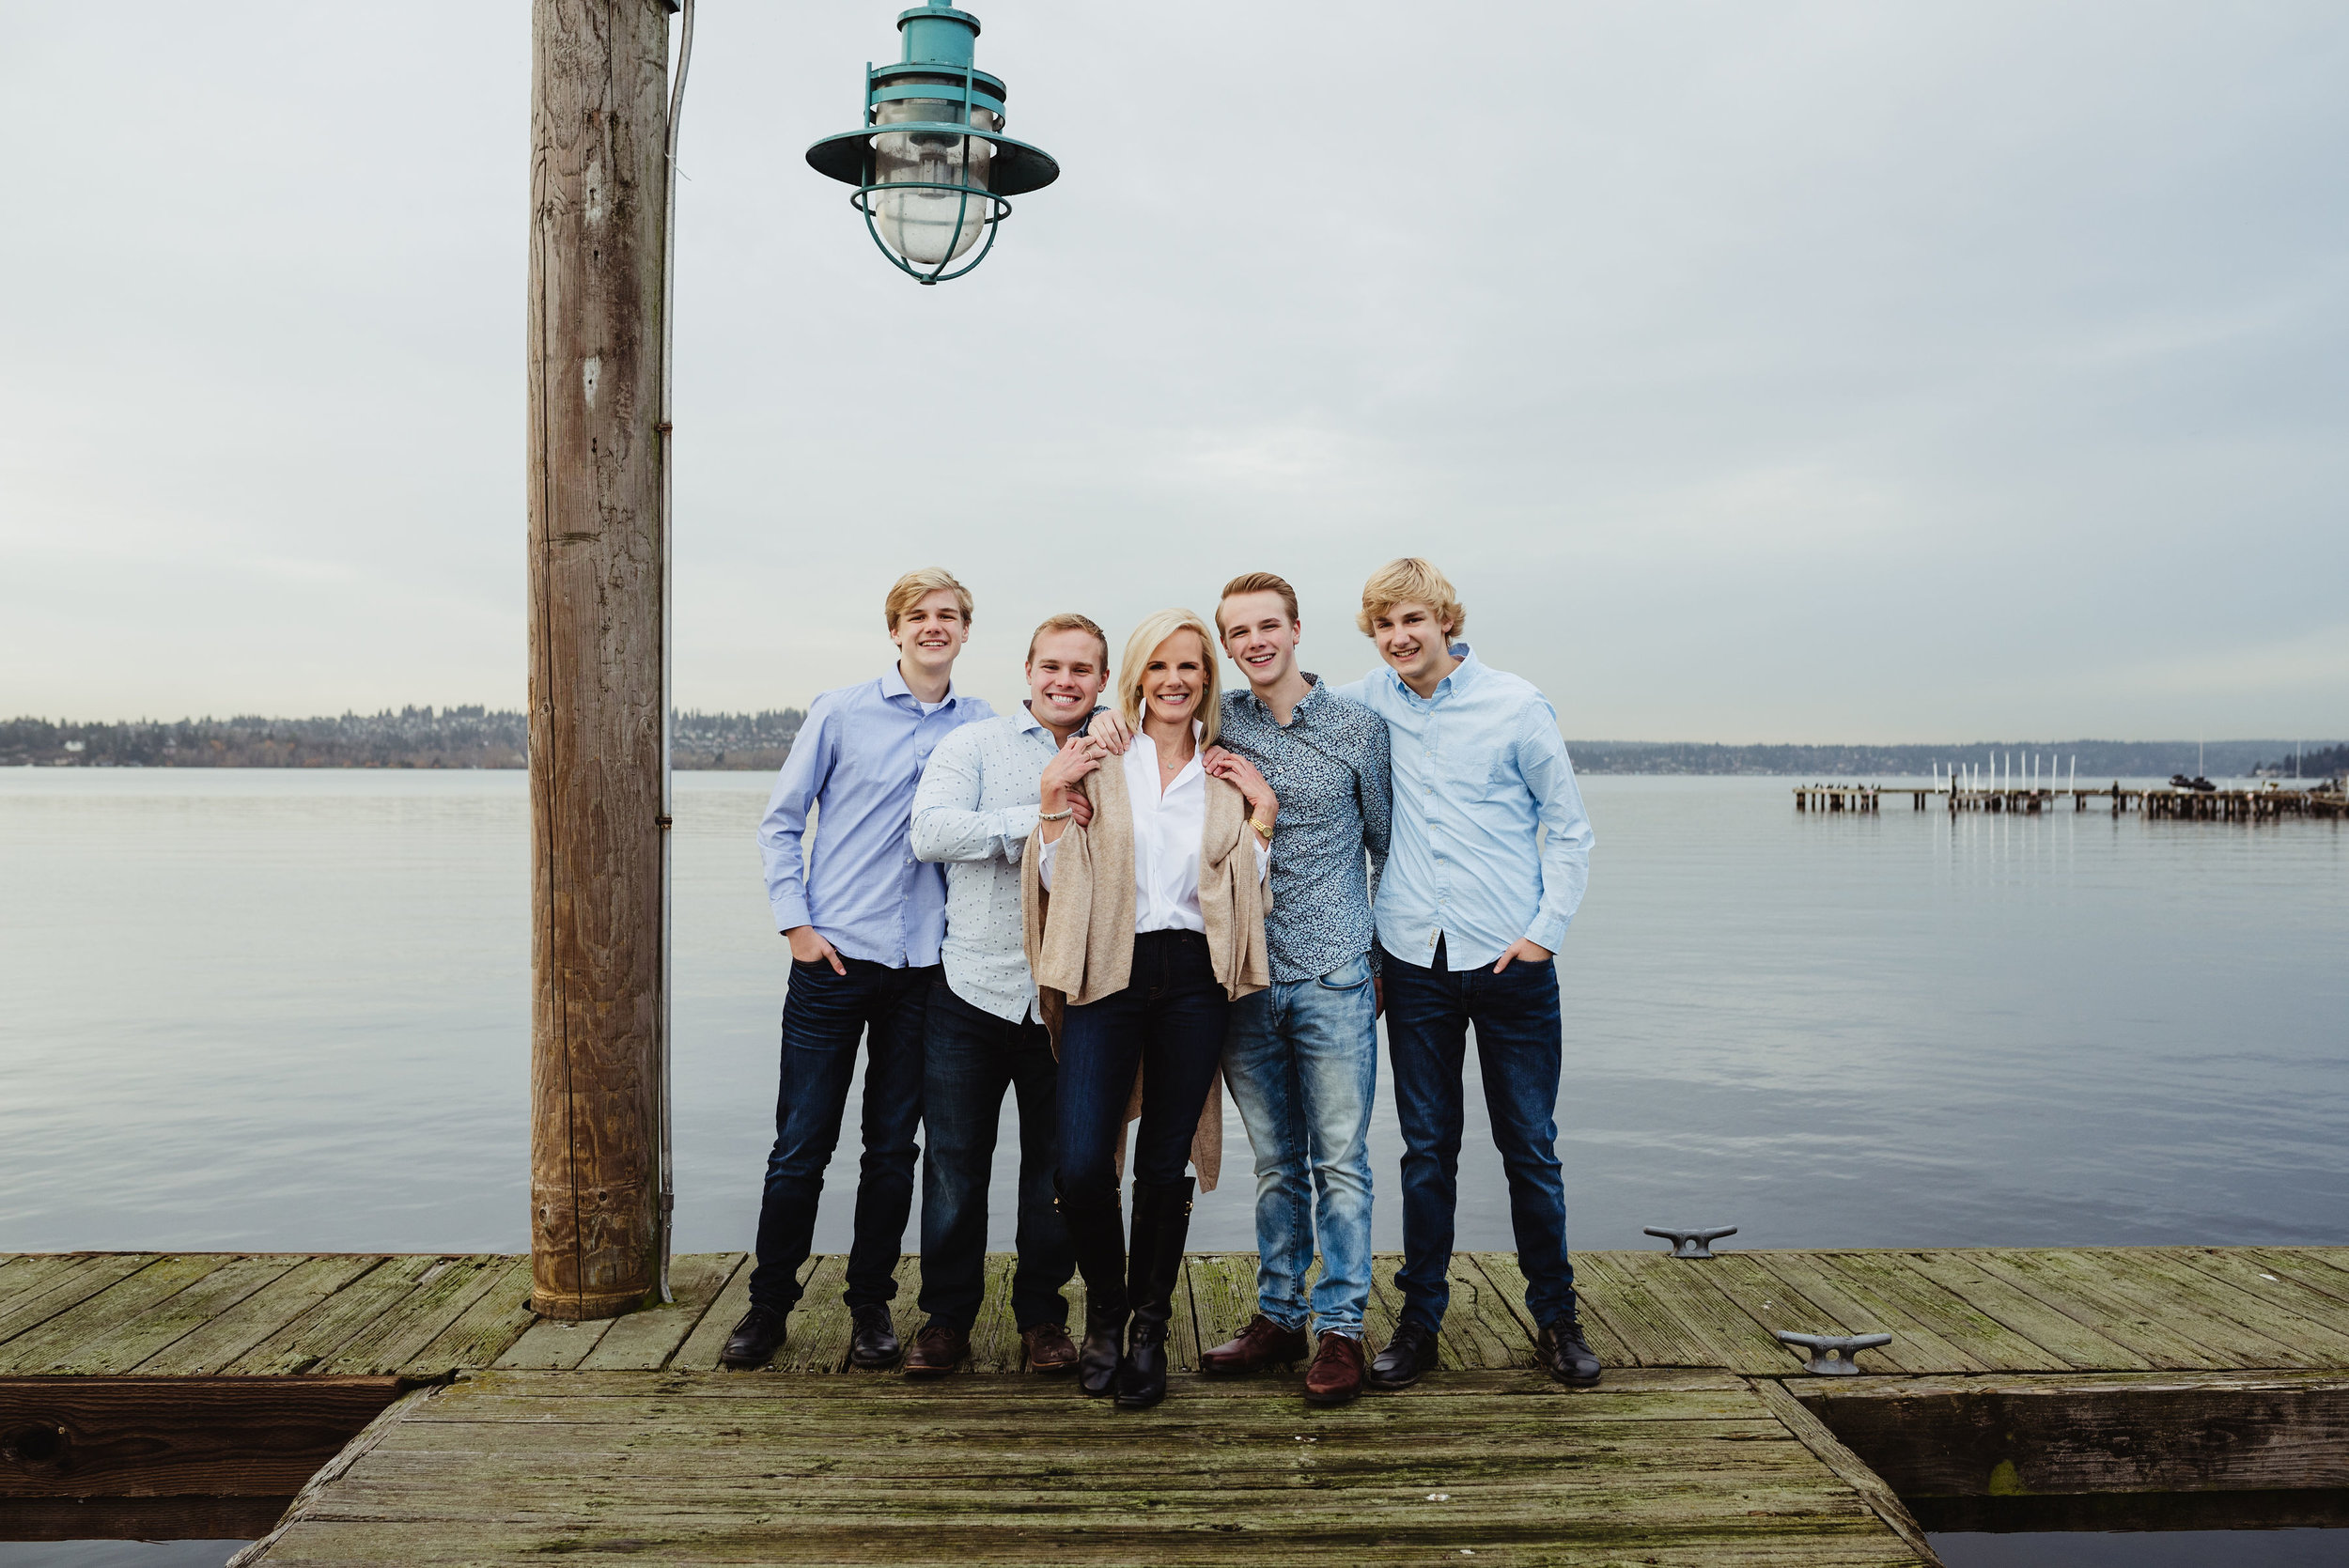 From left to right, Gage, James, Dana, Trent, Michael.